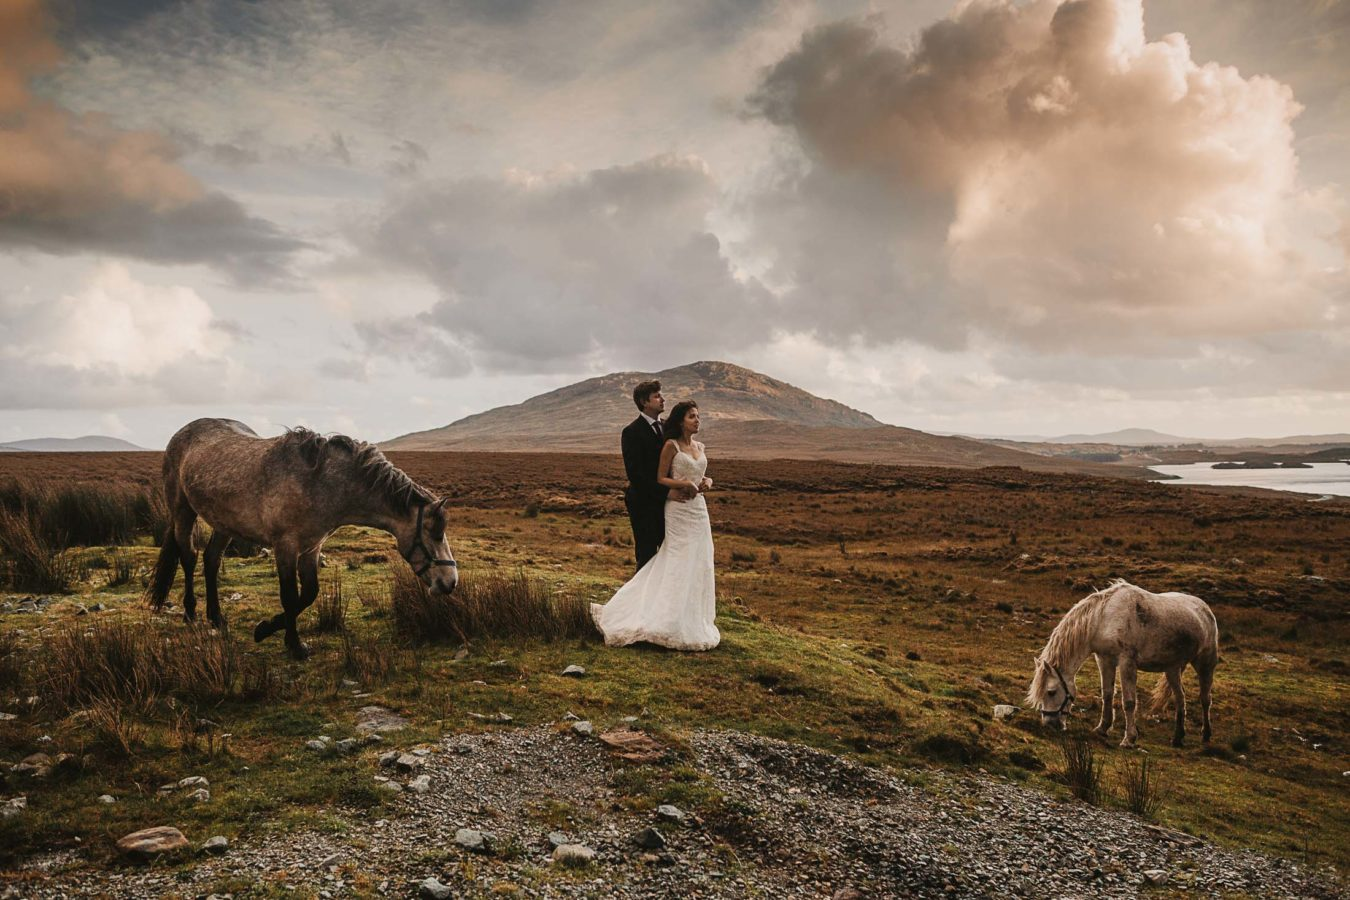 PLANNING FOR ELOPEMENTS IN IRELAND, connemara Ponies surround the couple as they hold each other, organized but their wedding planner Ireland